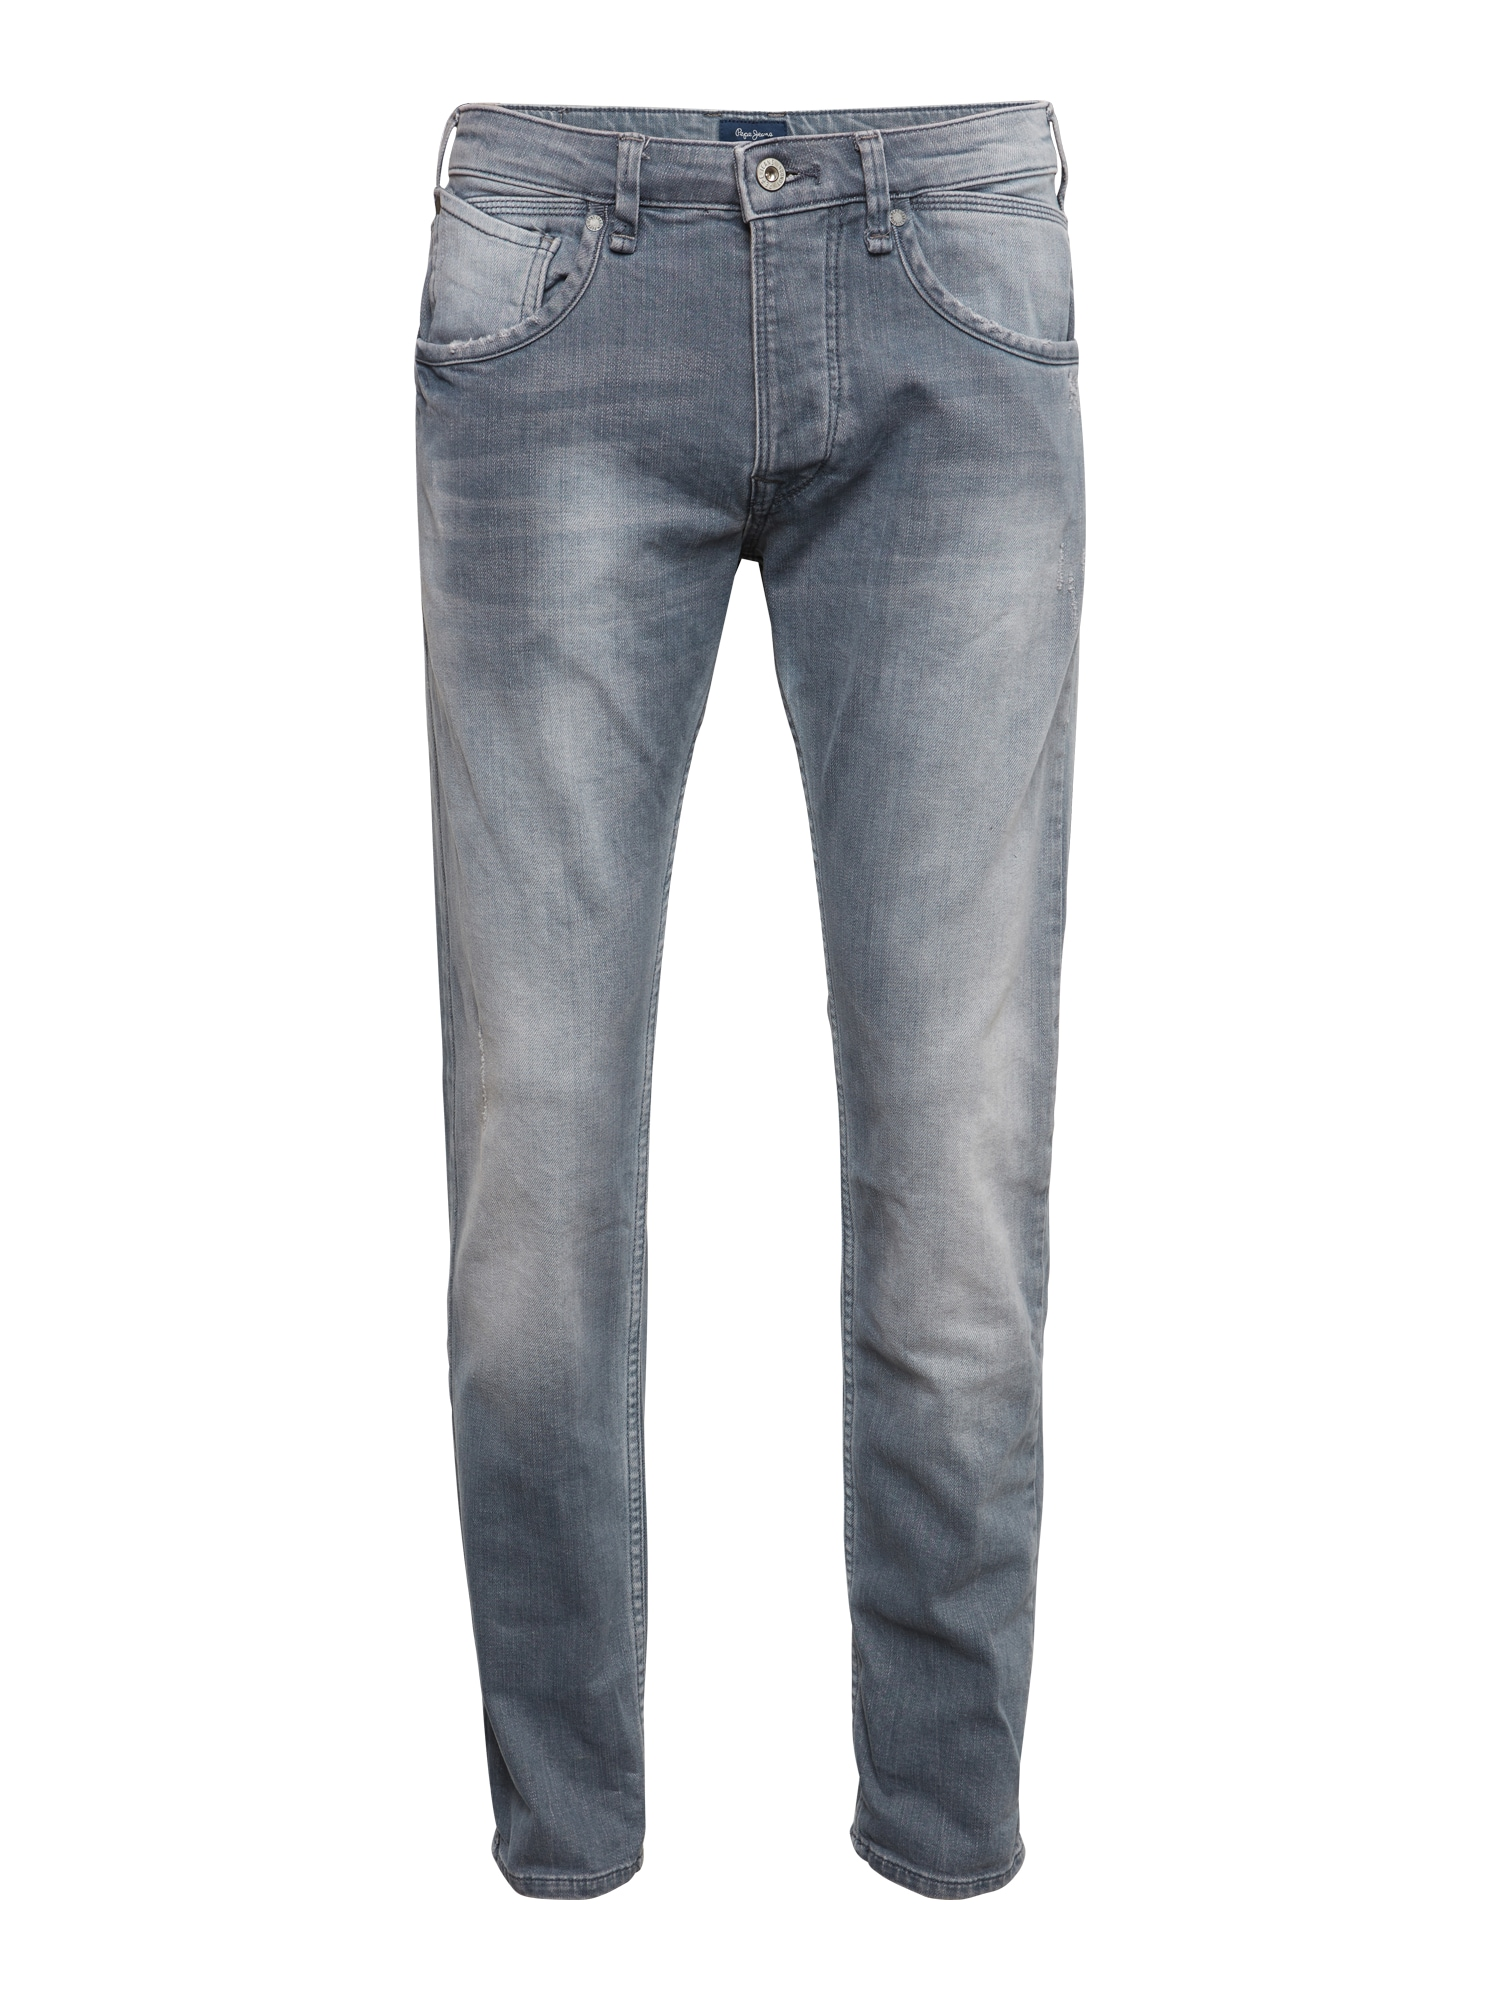 Pepe Jeans Heren Jeans ZINC DUSTED GREY grey denim